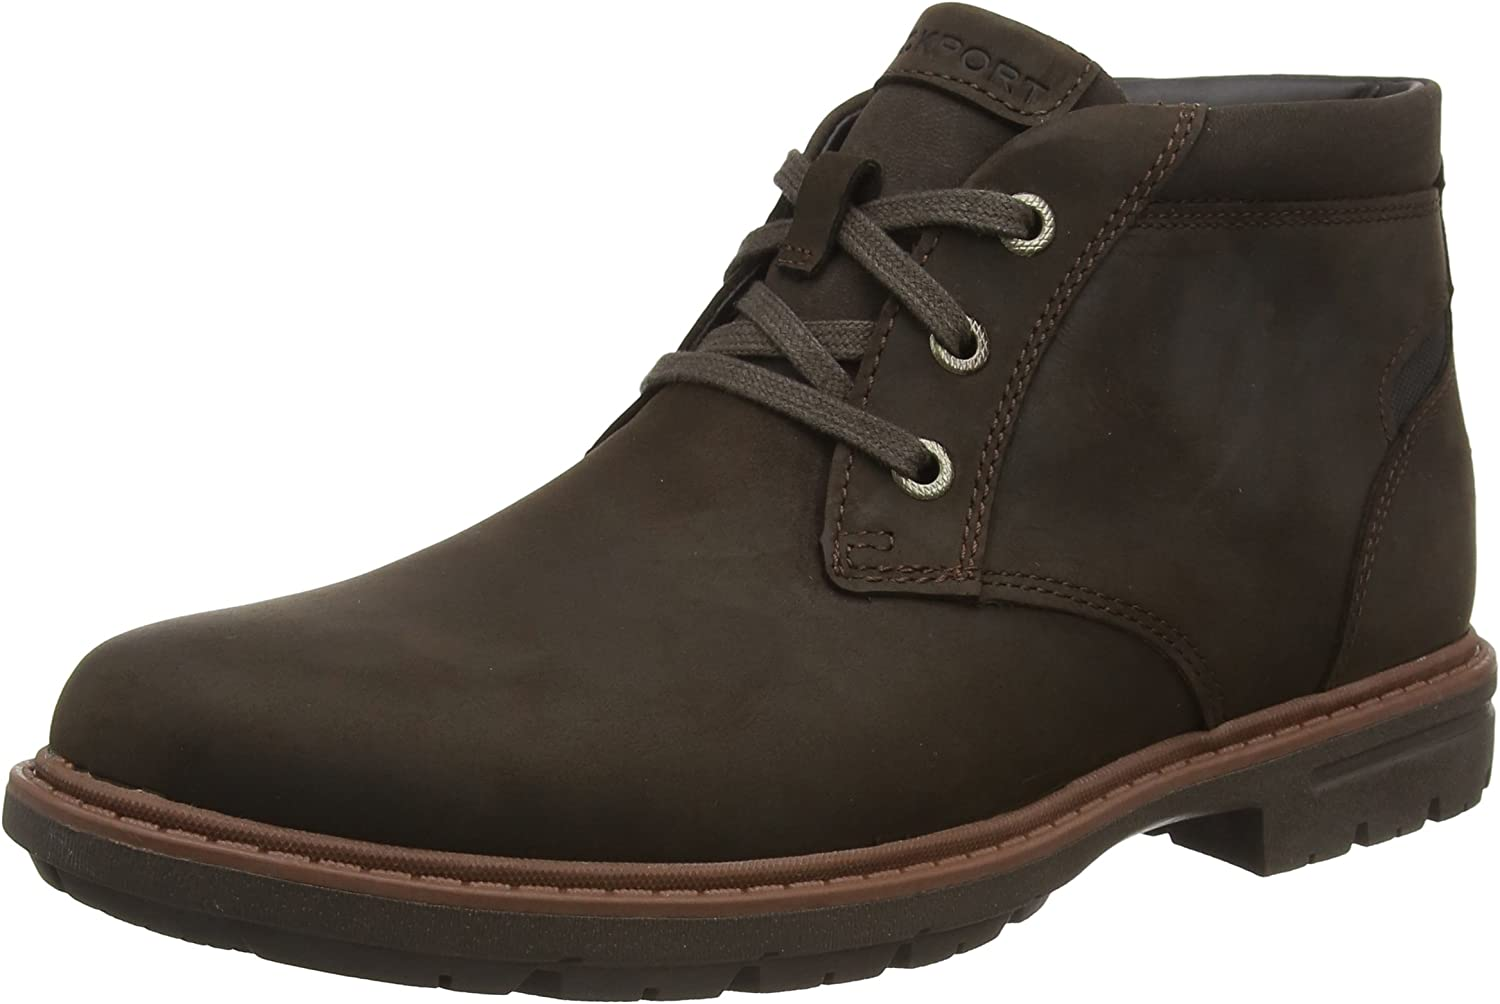 TALLA 41 EU. Rockport Tough Bucks Chukka, Botas Hombre